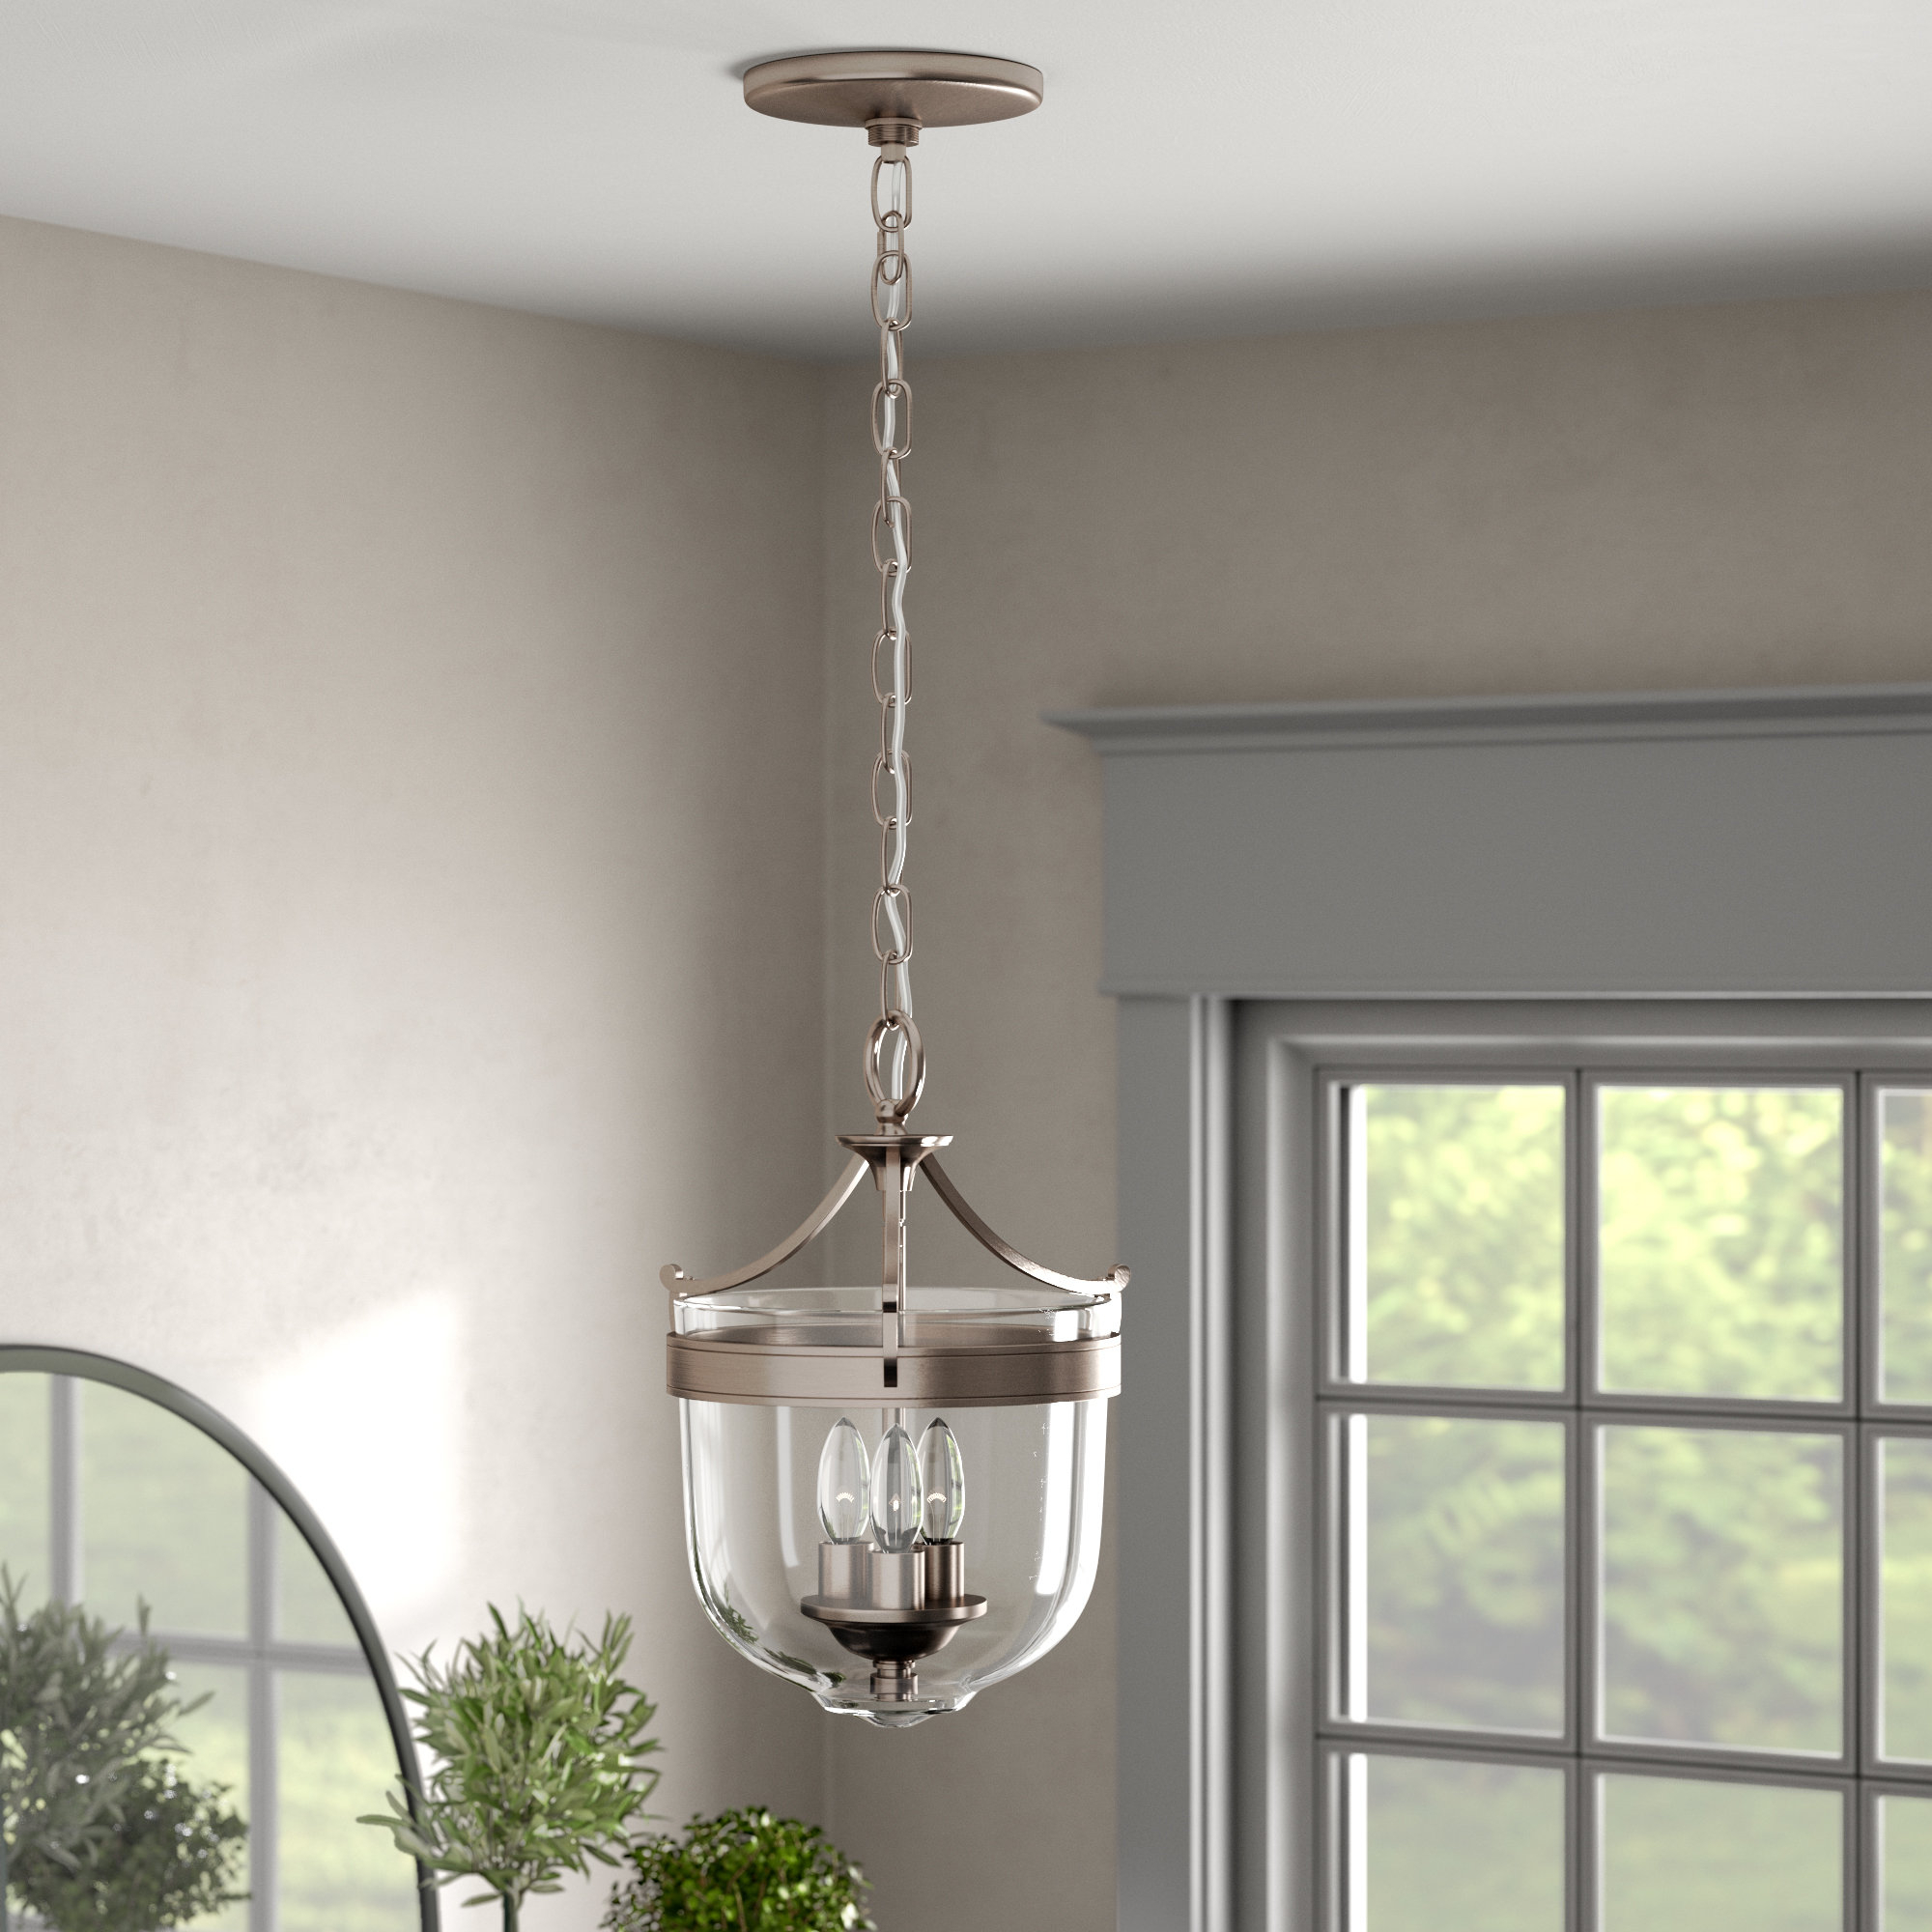 2019 Spokane 1 Light Single Urn Pendants Throughout Small Urn Pendant Lighting (View 2 of 20)